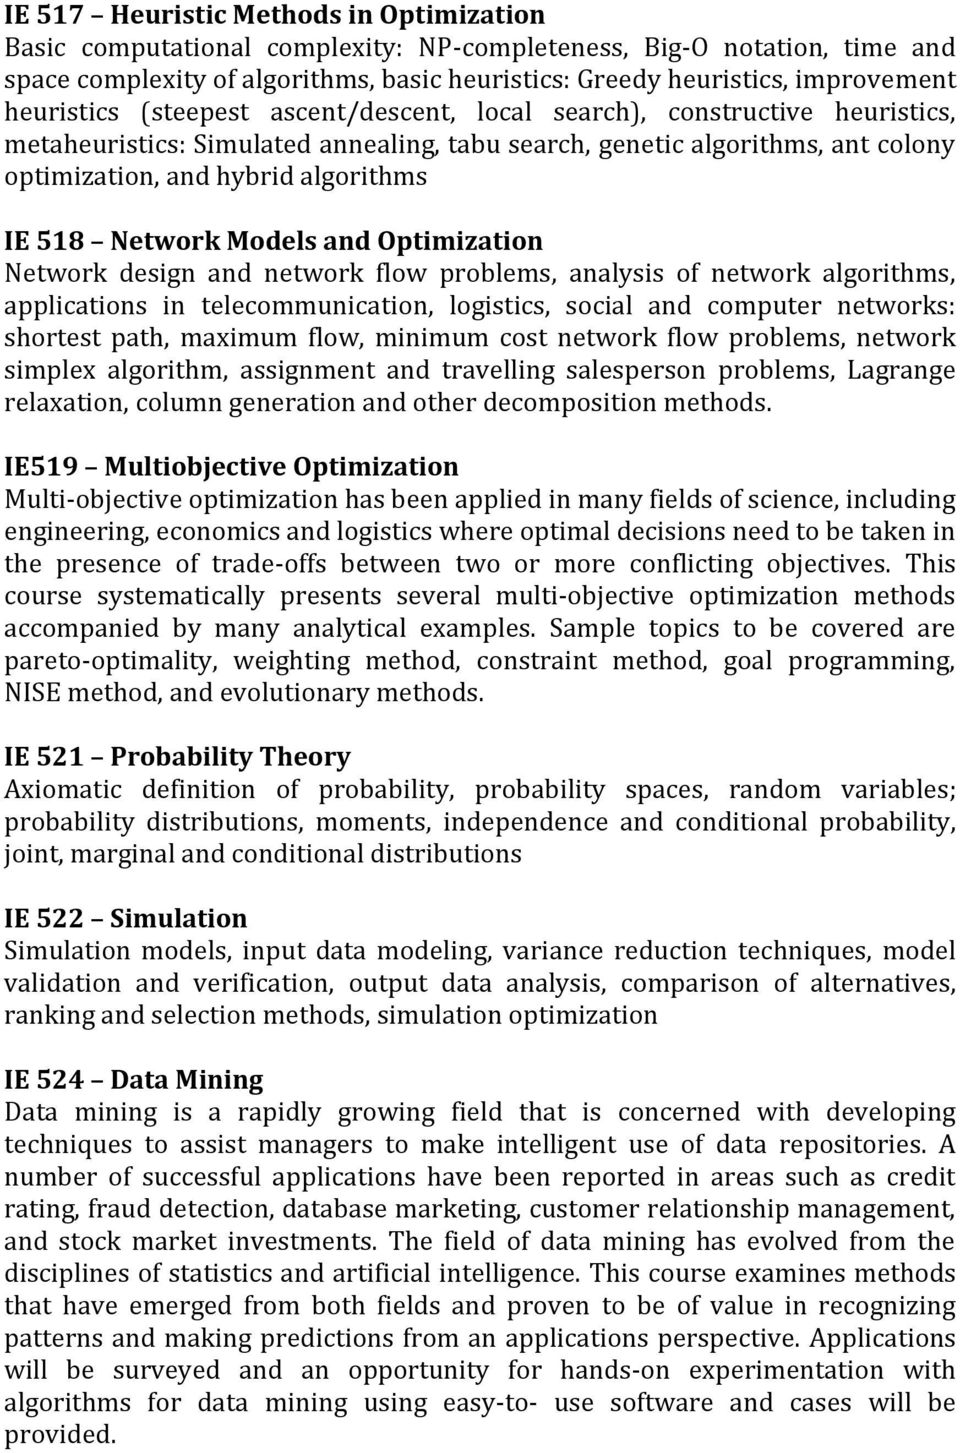 518 Network Models and Optimization Network design and network flow problems, analysis of network algorithms, applications in telecommunication, logistics, social and computer networks: shortest